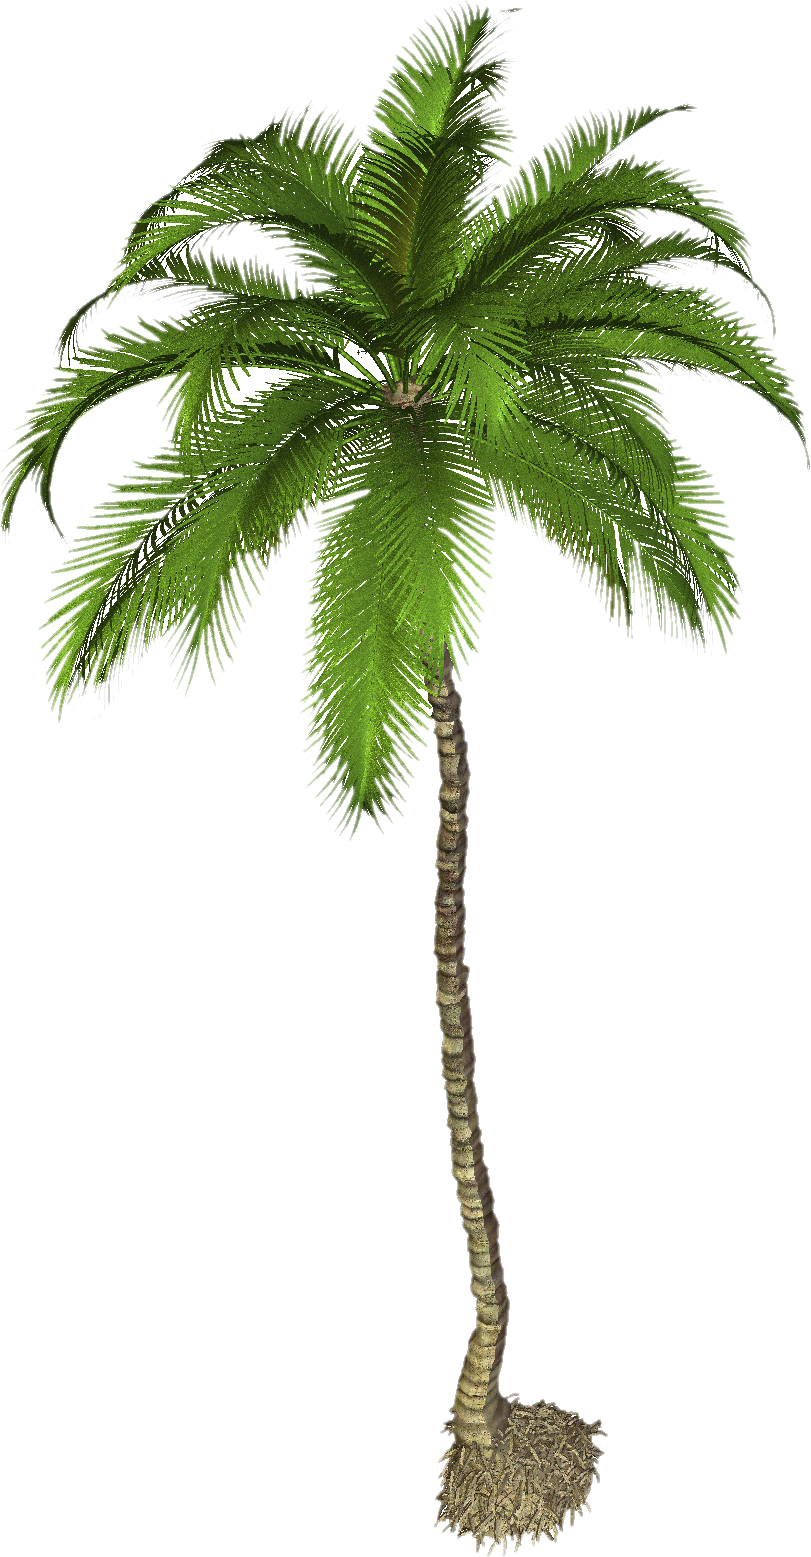 Free Icons Png:palm Tree Png Transparent - Palm Tree, Transparent background PNG HD thumbnail